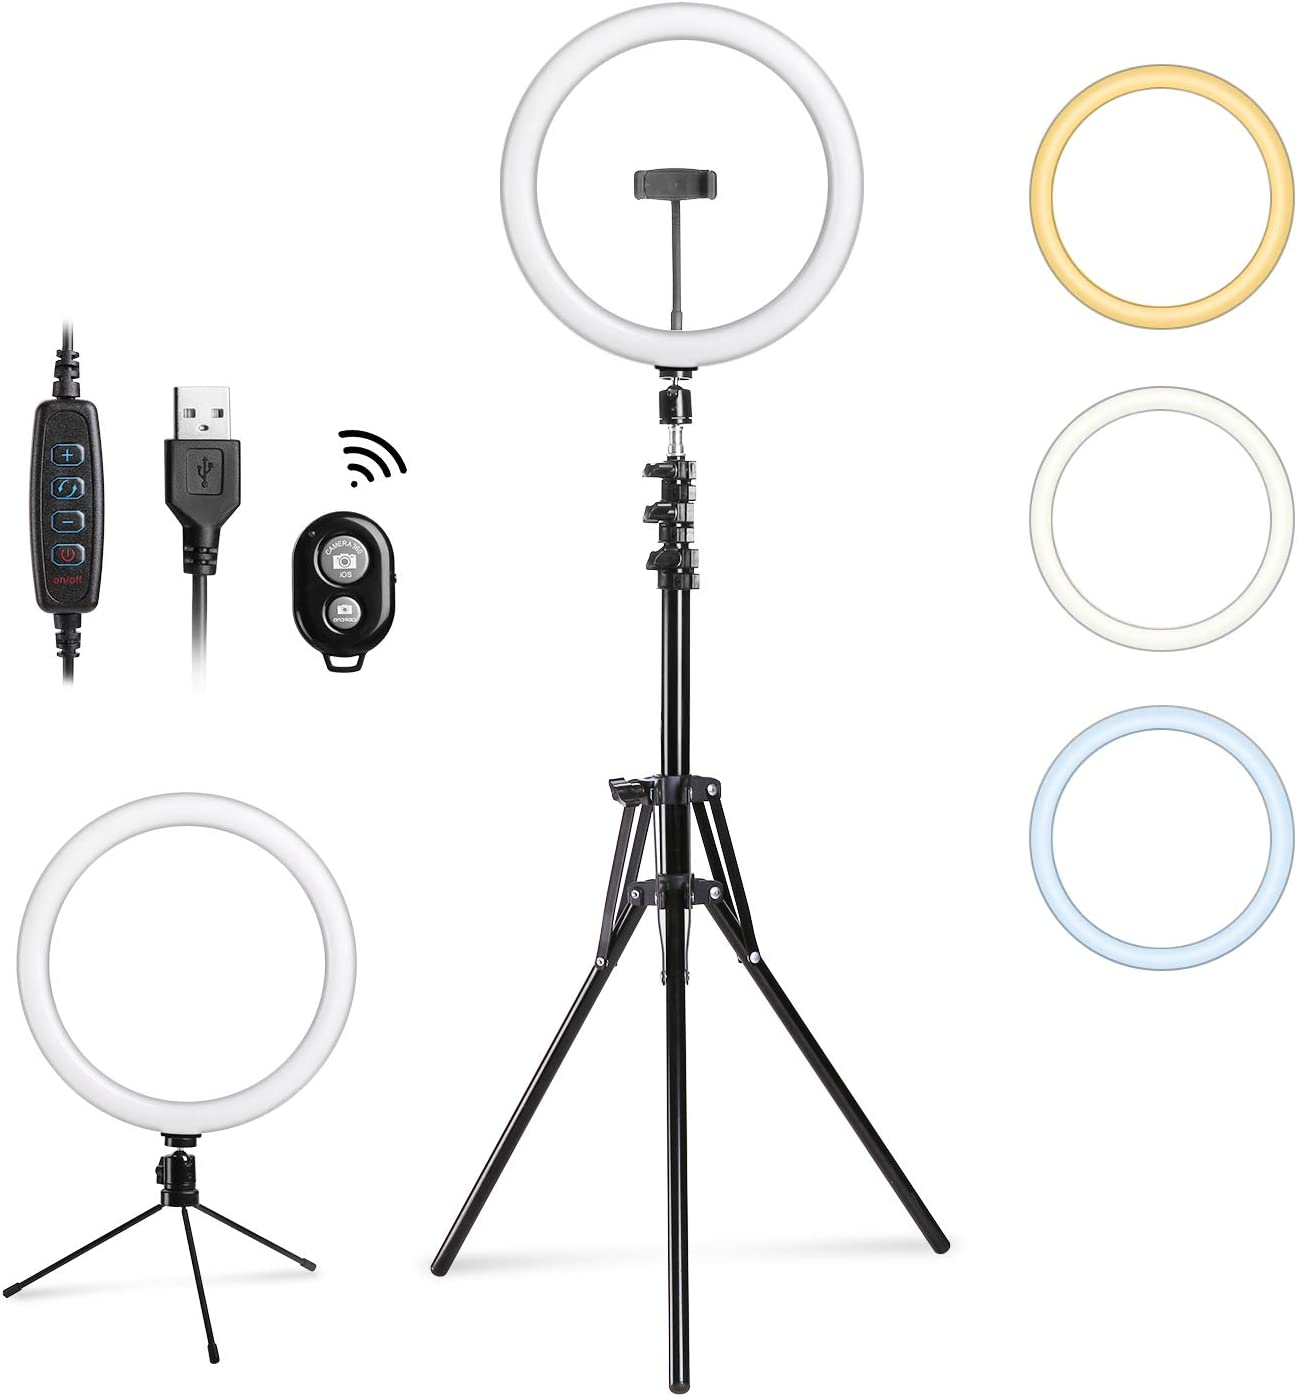 "Entil 12"" Selfie Light Ring Light Mini LED Camera Lighting with Tripod and Cell Phone Stand for Video Shooting/Photography Livestream Beauty in Home Office Outdoor, Compatible with iOs Android"